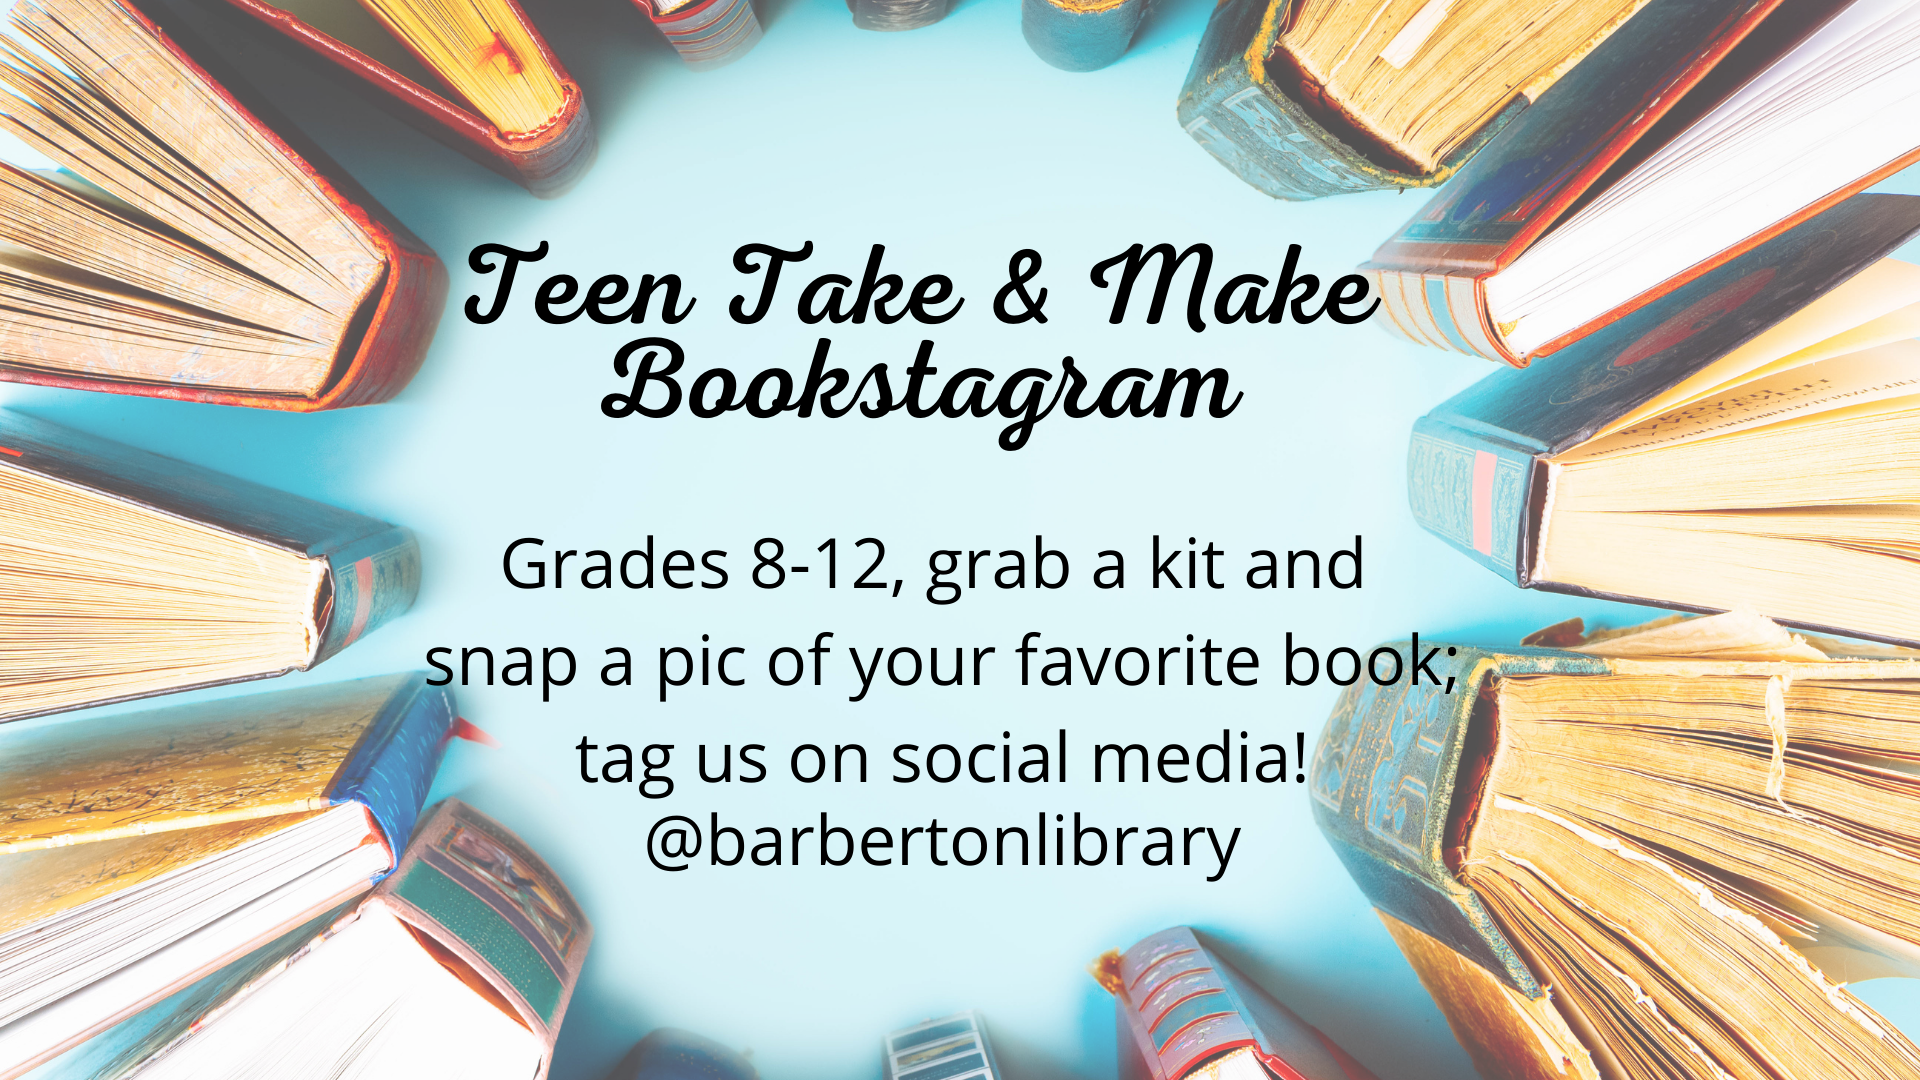 Teen Take & Make: Bookstagrams